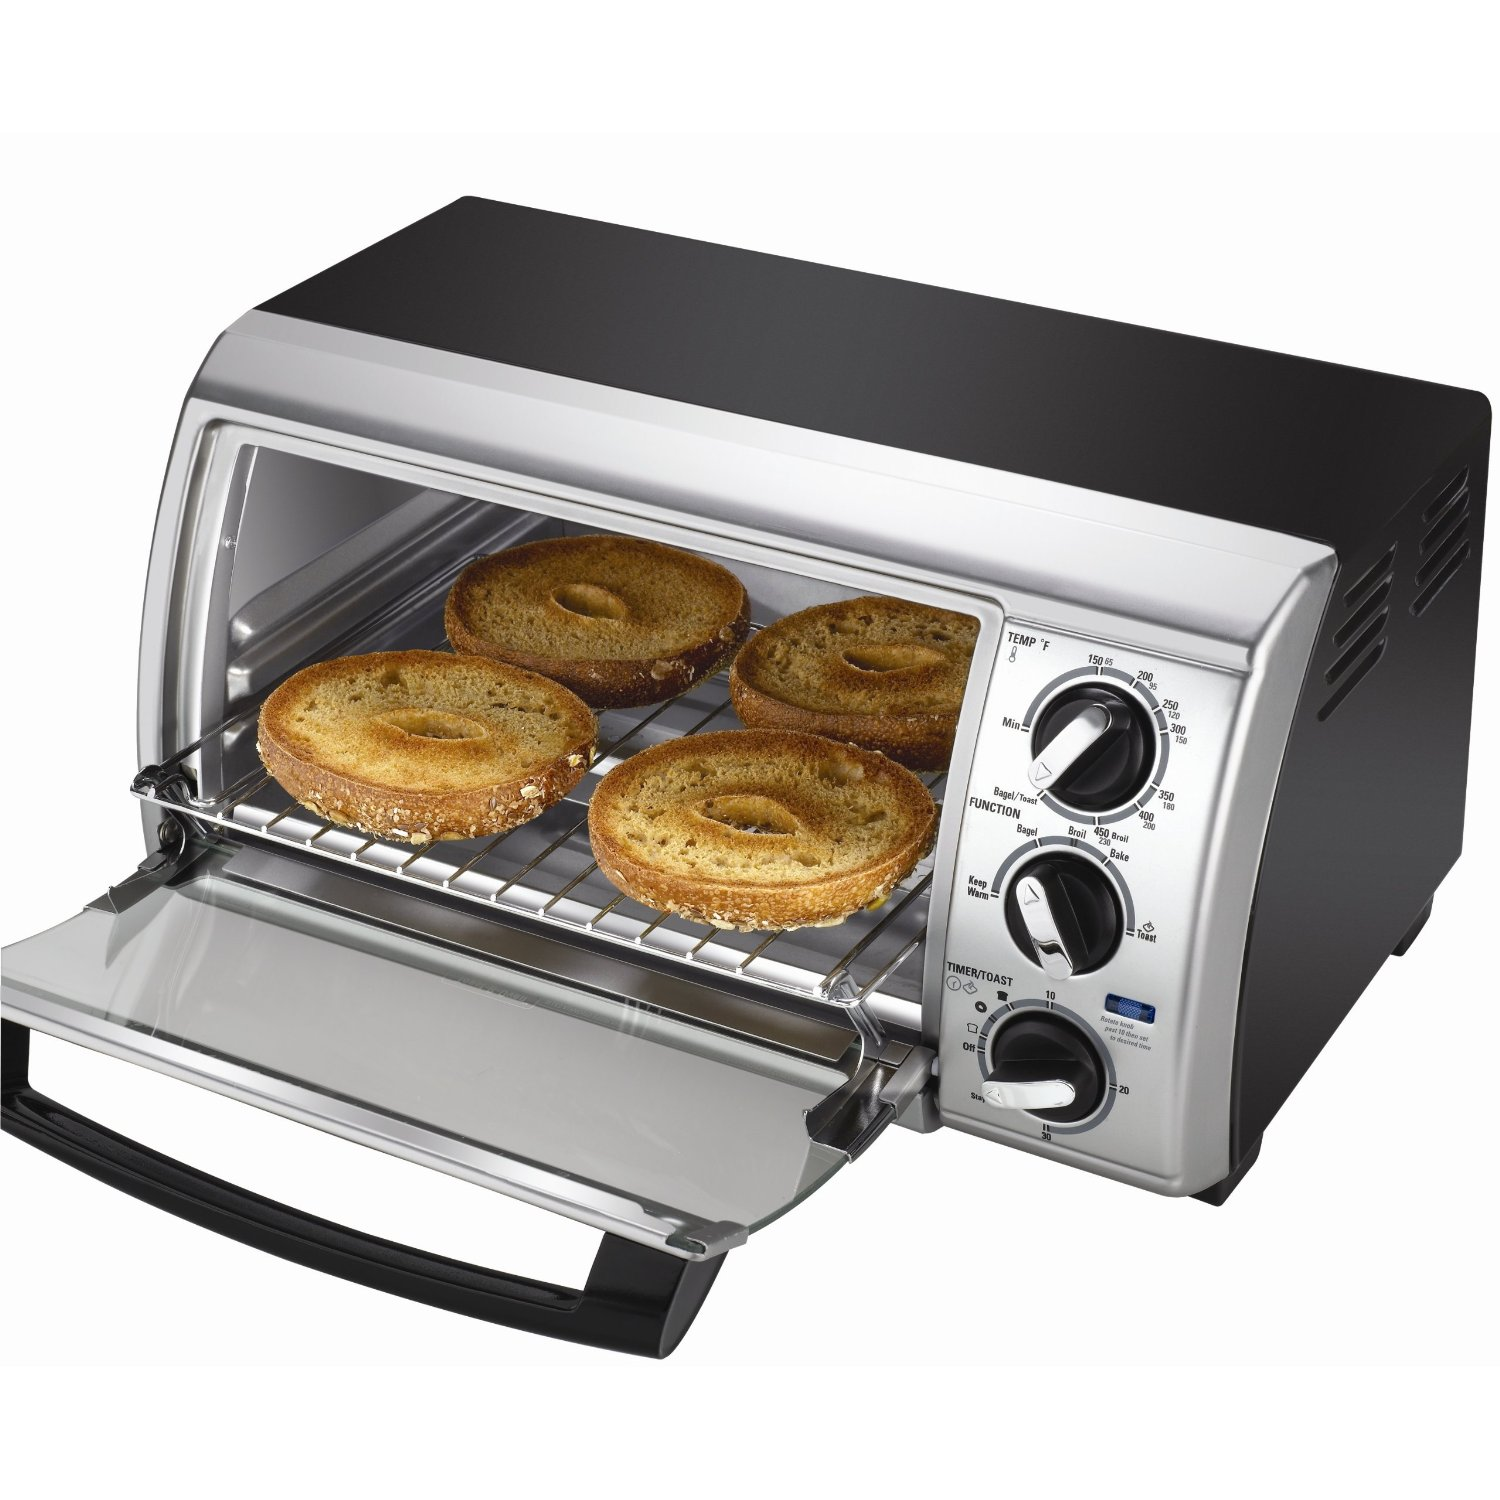 Countertop Pizza Oven Reviews 15 Cool Ways To Use Your Toaster Oven Immediate Appliance